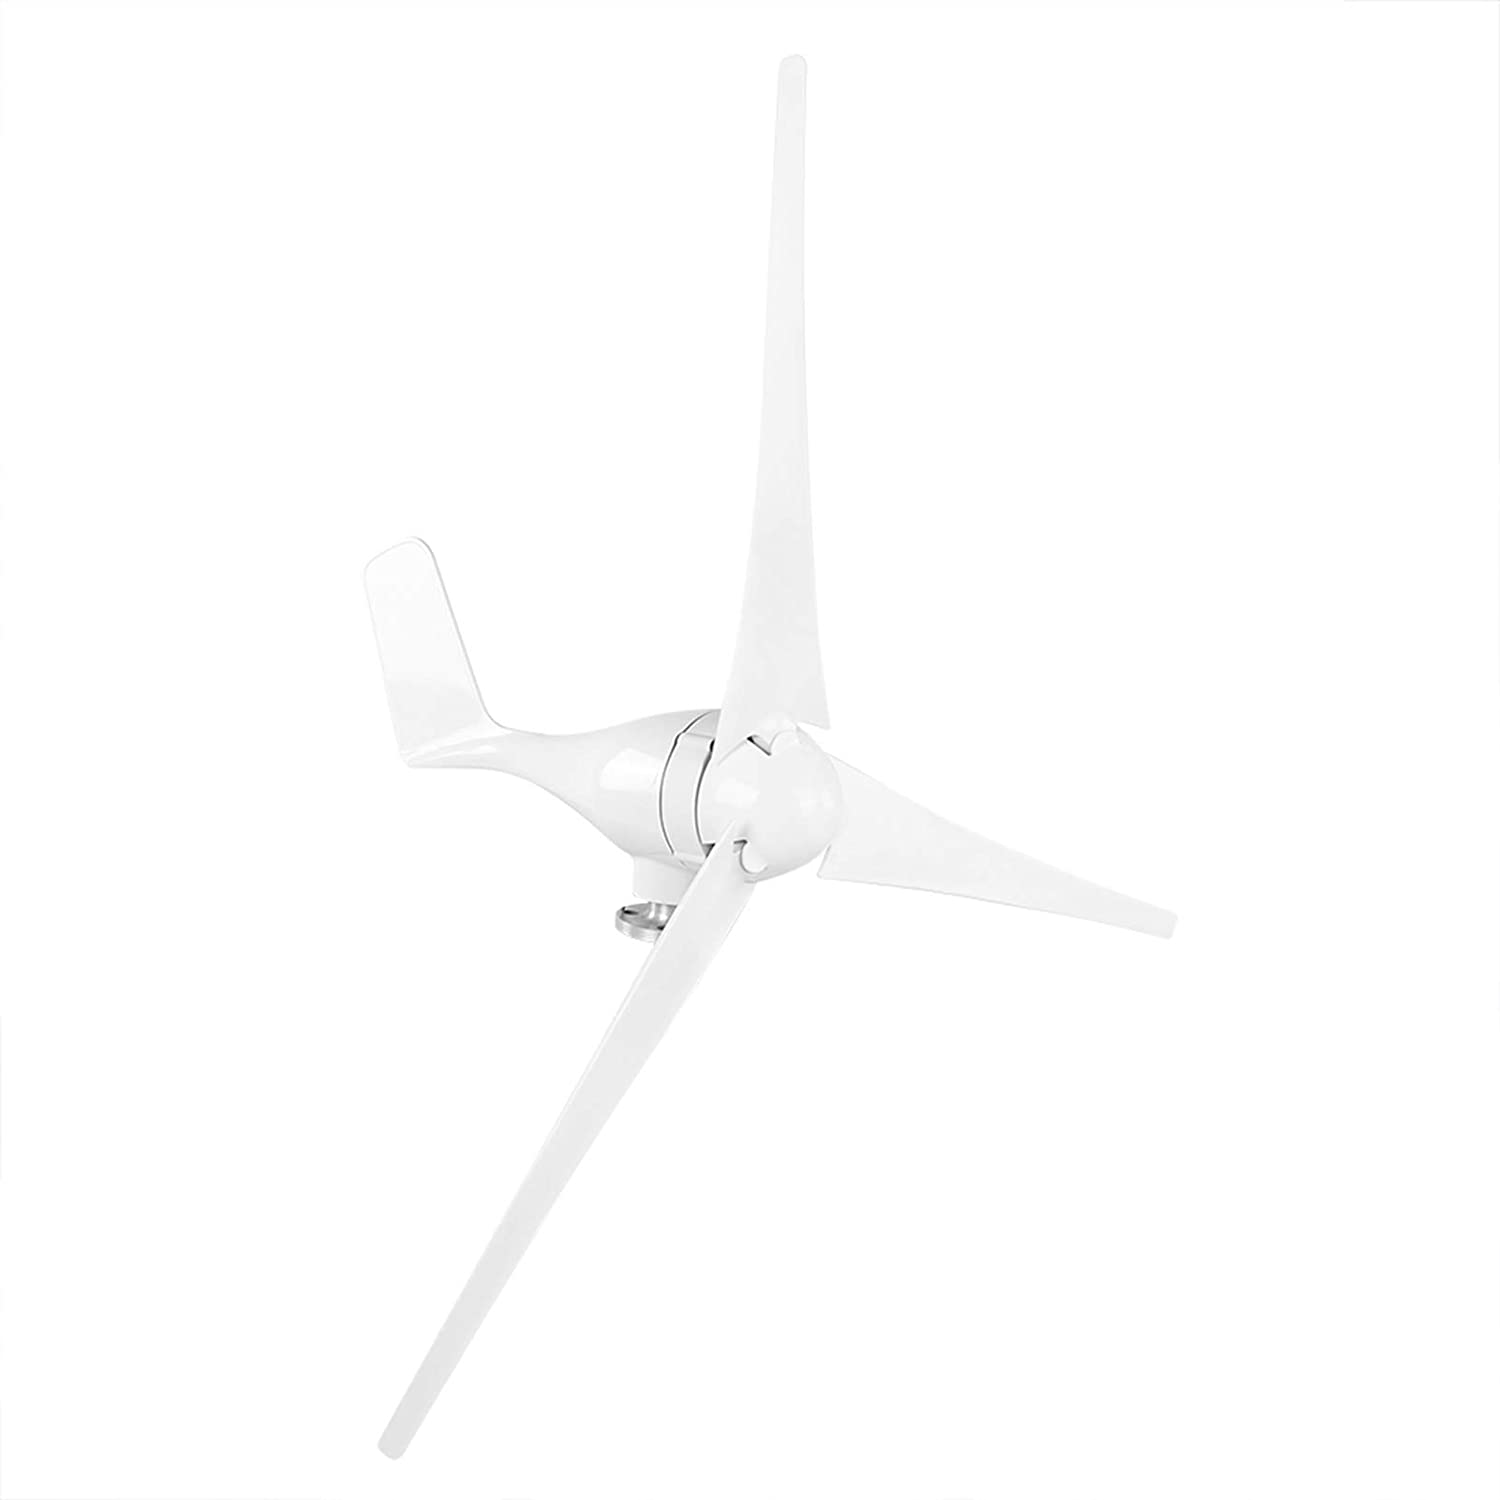 SALUTUYA 3 Blades Power Turbines Wind Be super welcome Generator Kit Parts High quality new Small